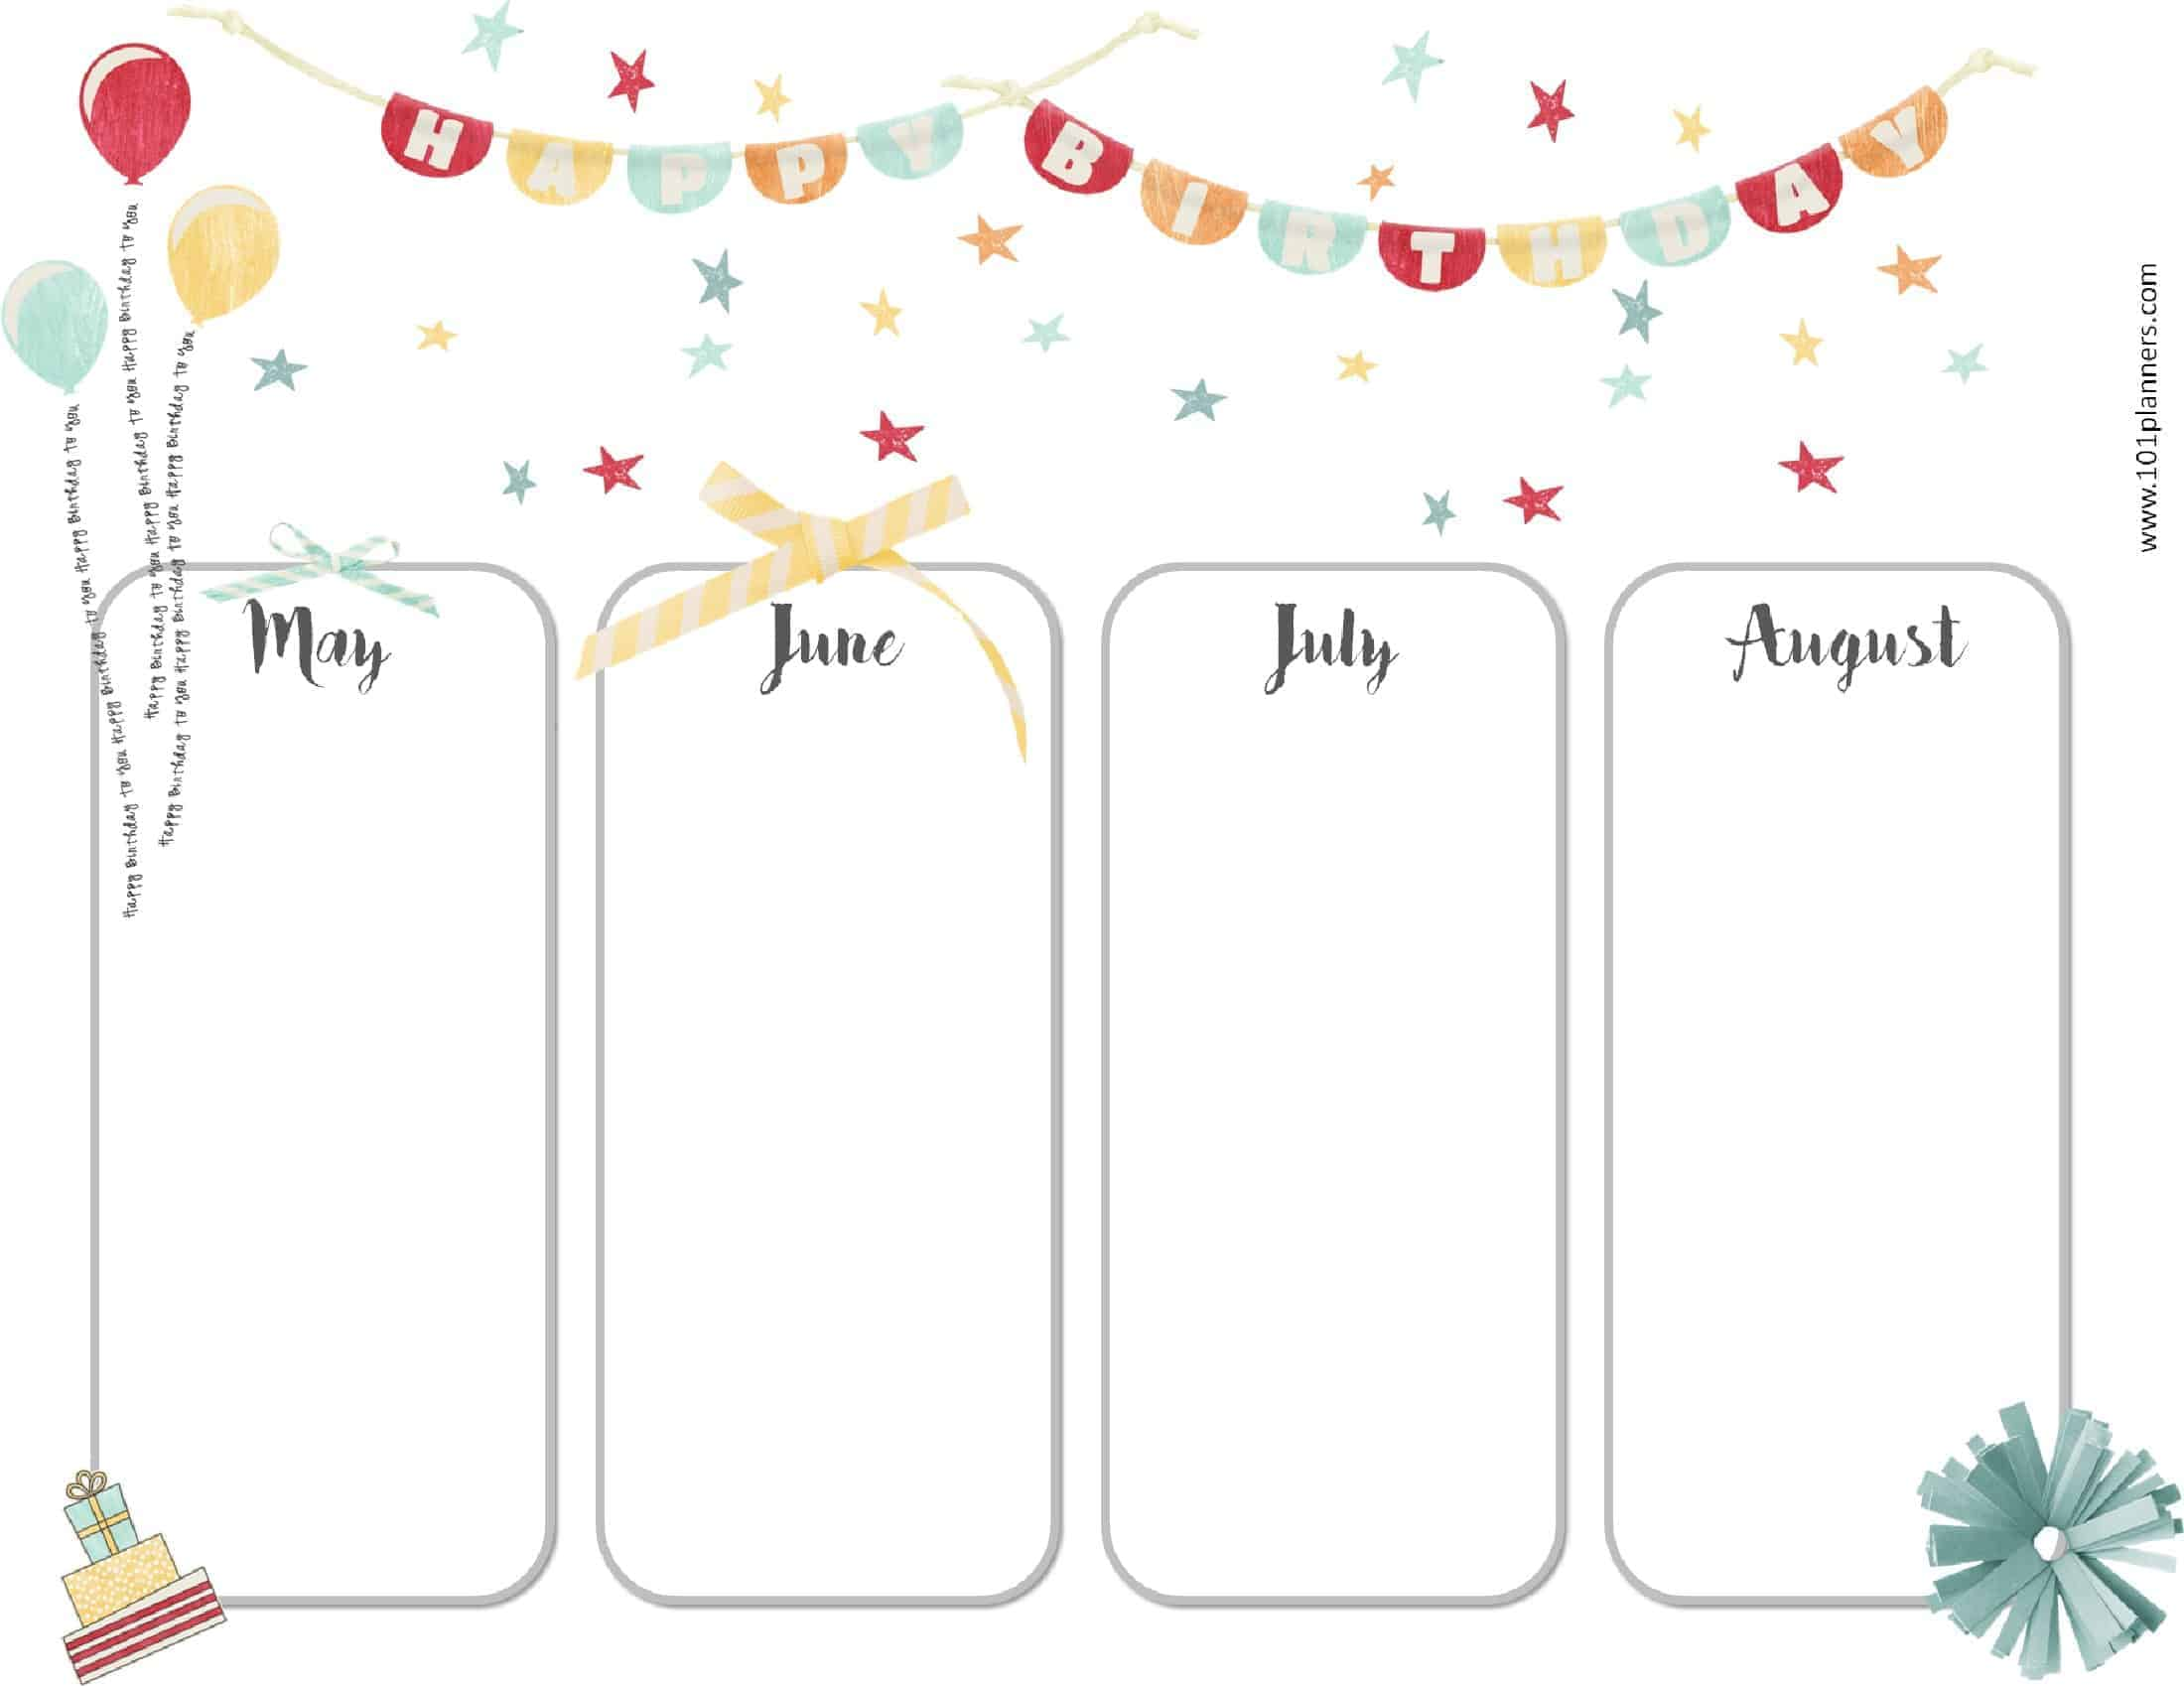 photograph about Birthday List Printable titled Totally free Birthday Calendar Printable Customizable Plenty of